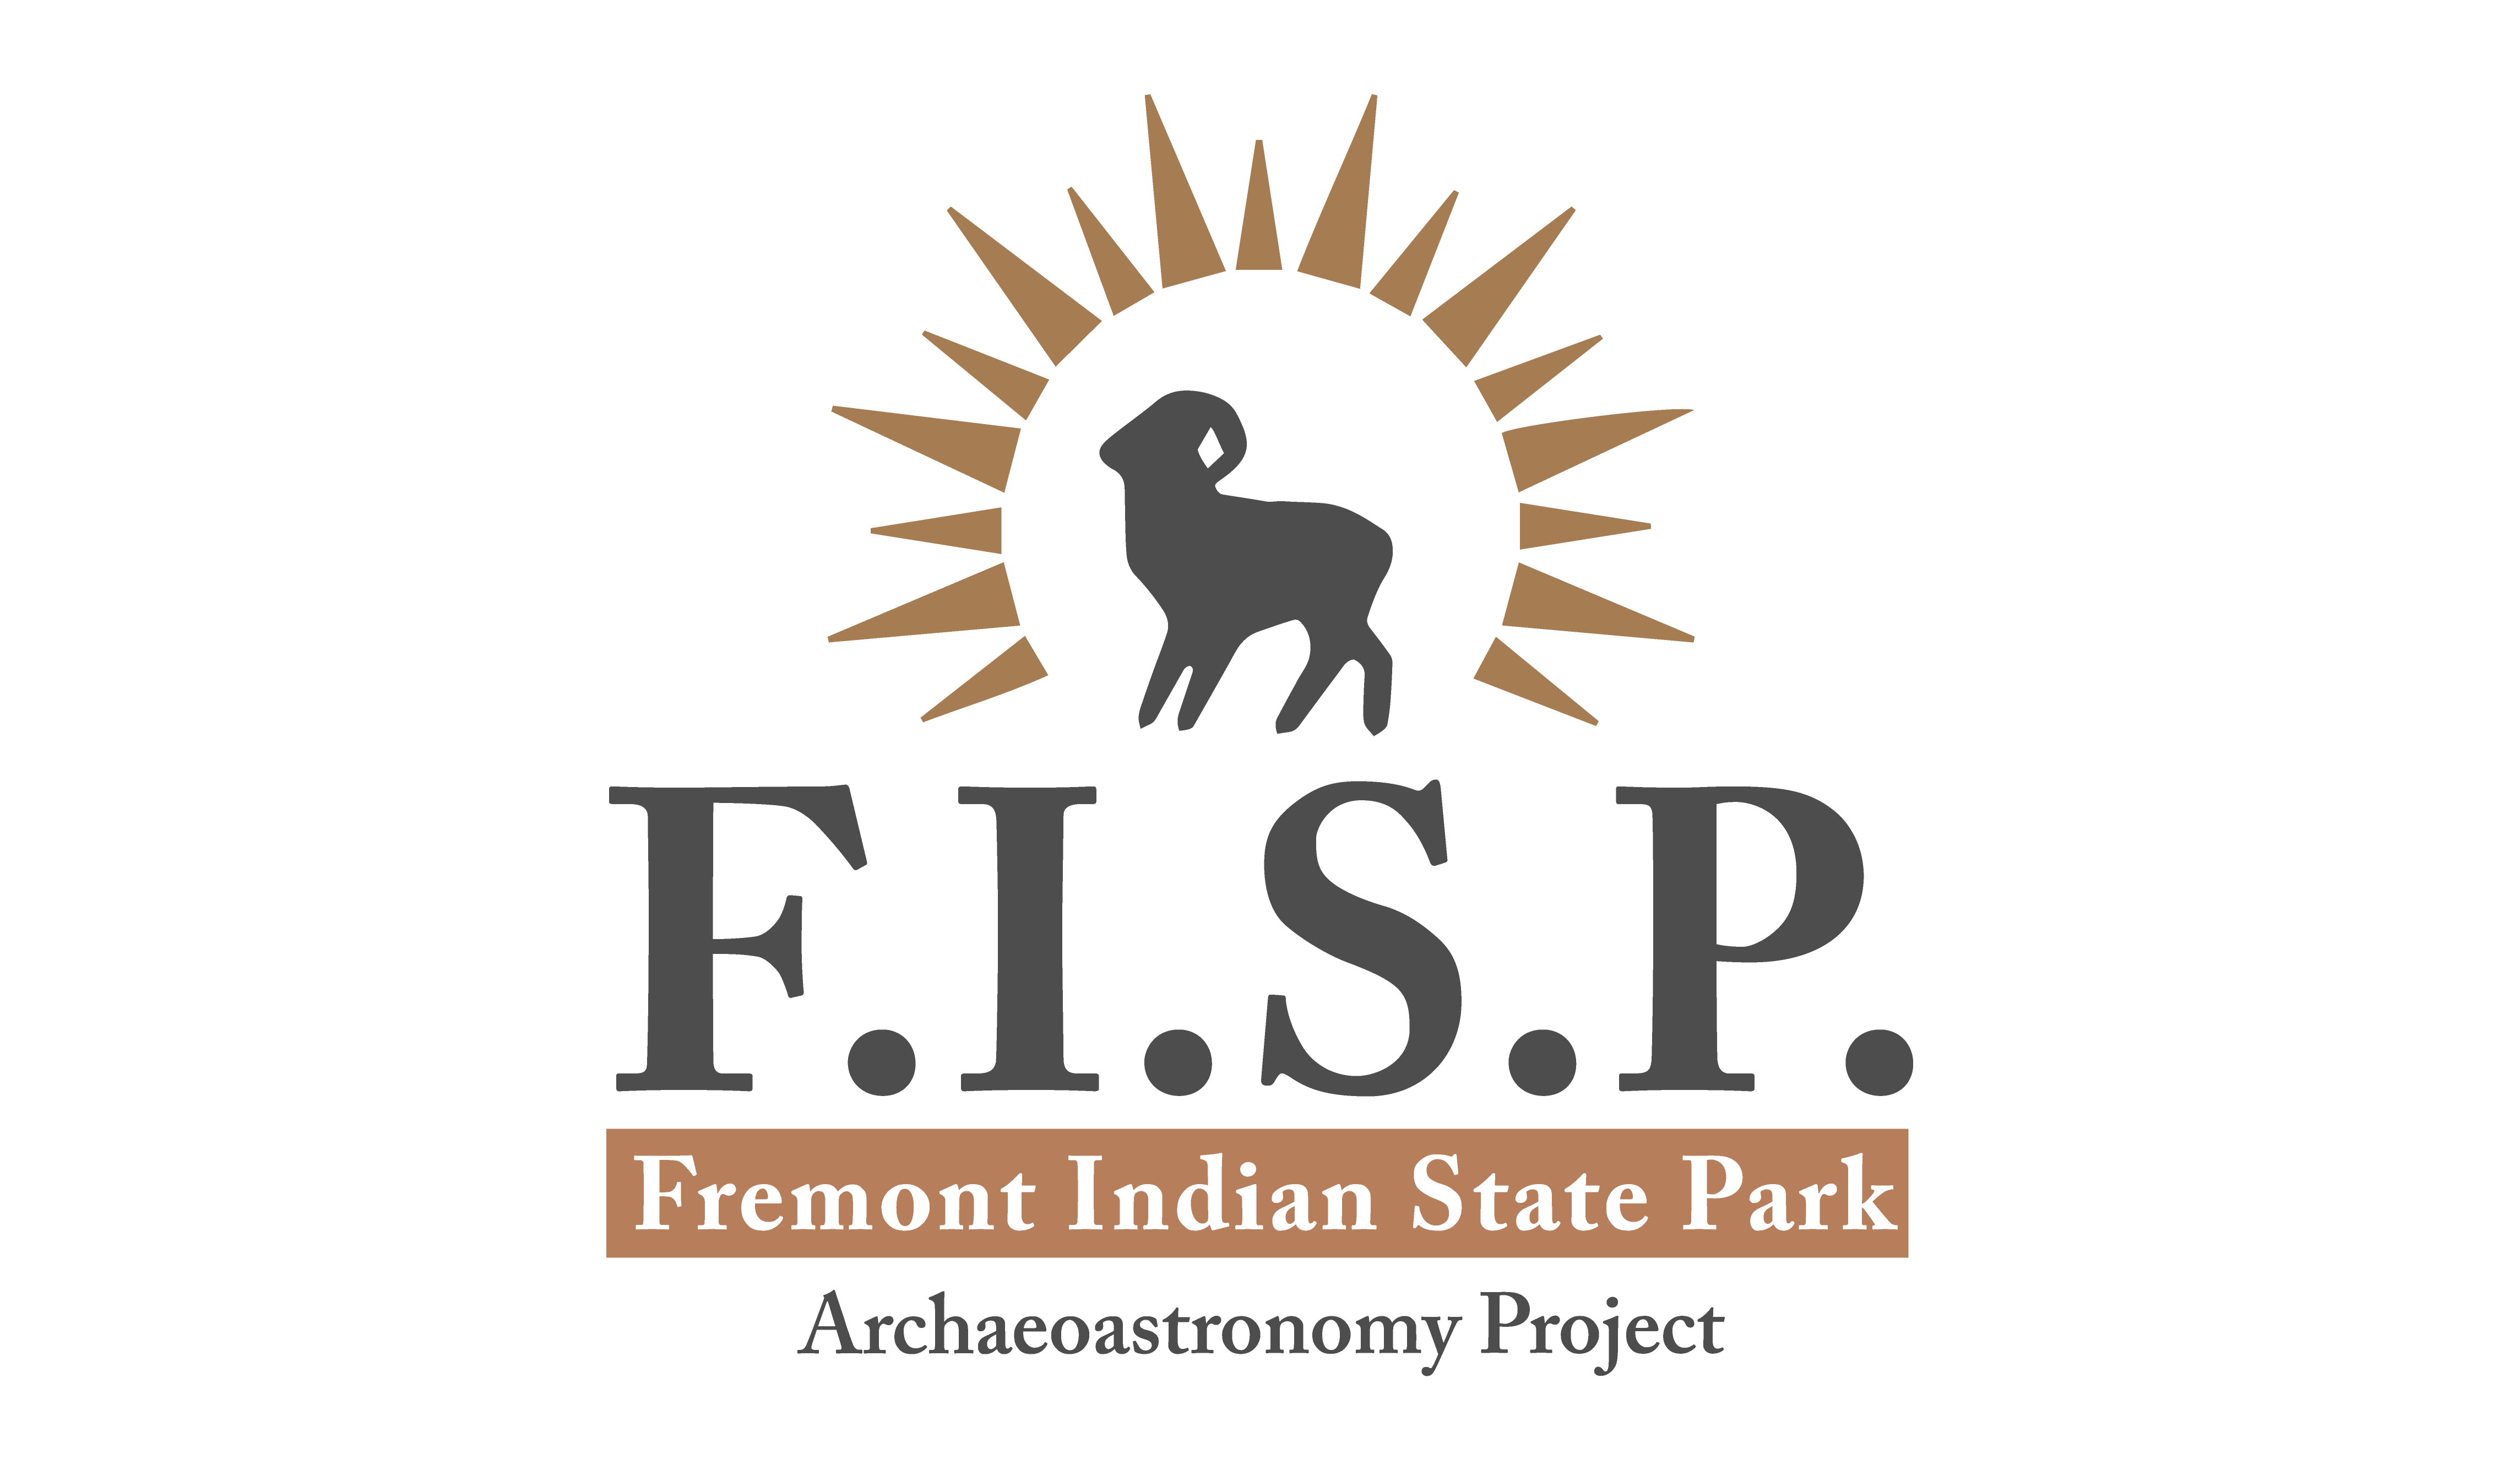 <i>The Archaeoastronomy Project of Fremont Indian State Park</i>